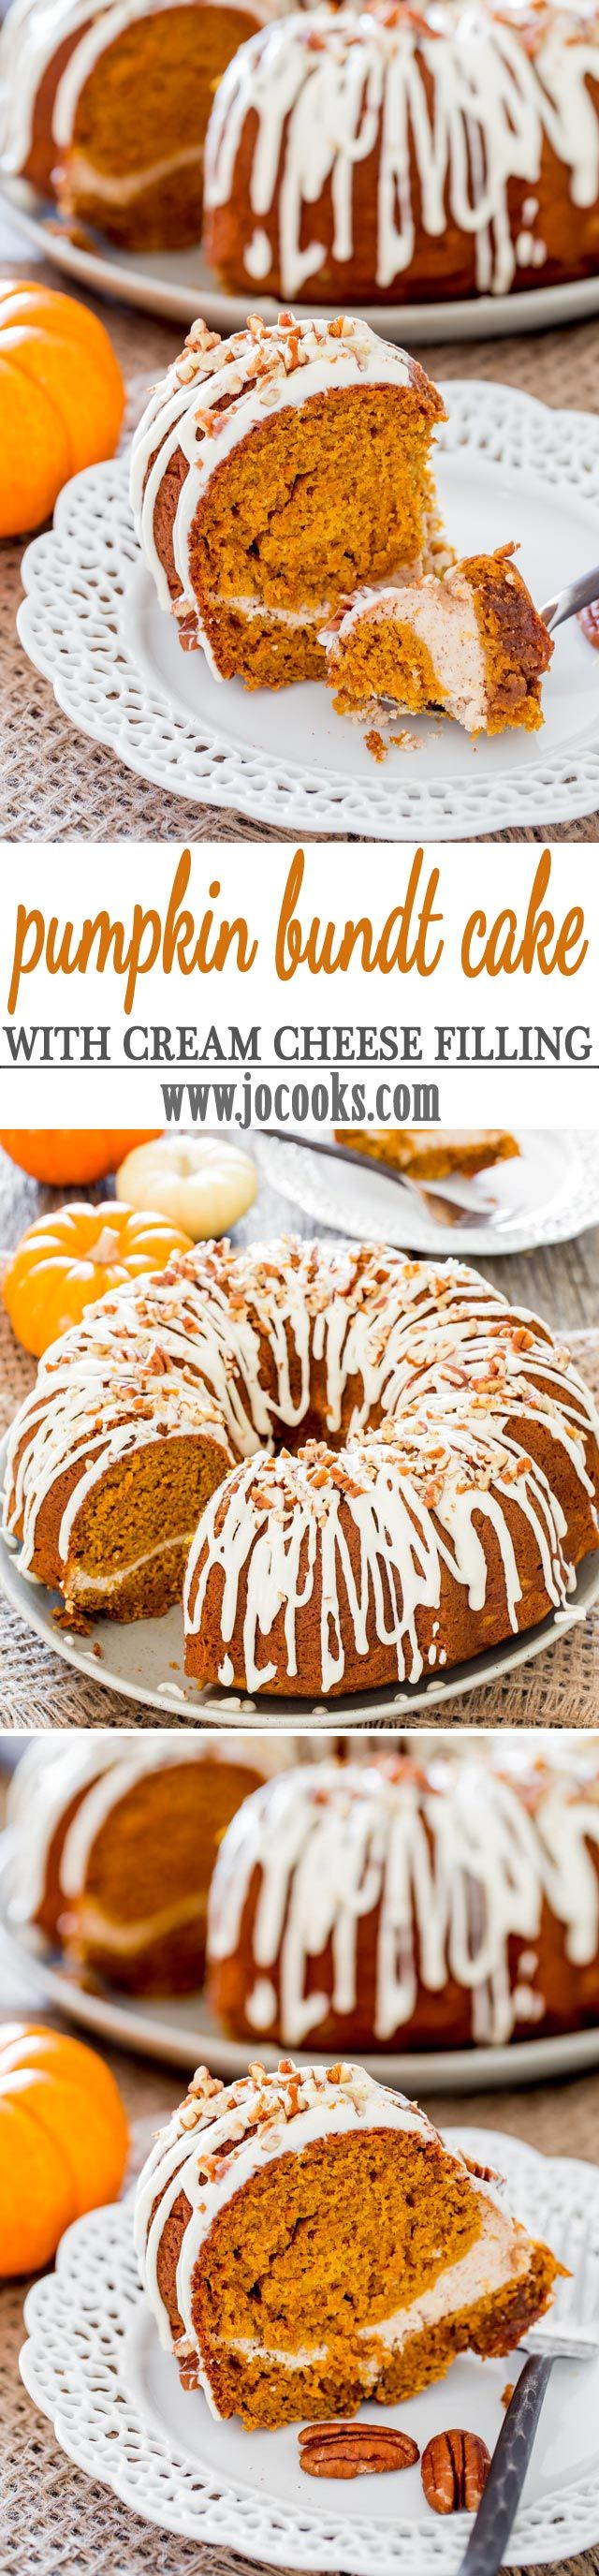 A delicious bundt cake that tastes like pumpkin pie, with a lovely cream cheese filling then drizzled with a yummy cream cheese icing!